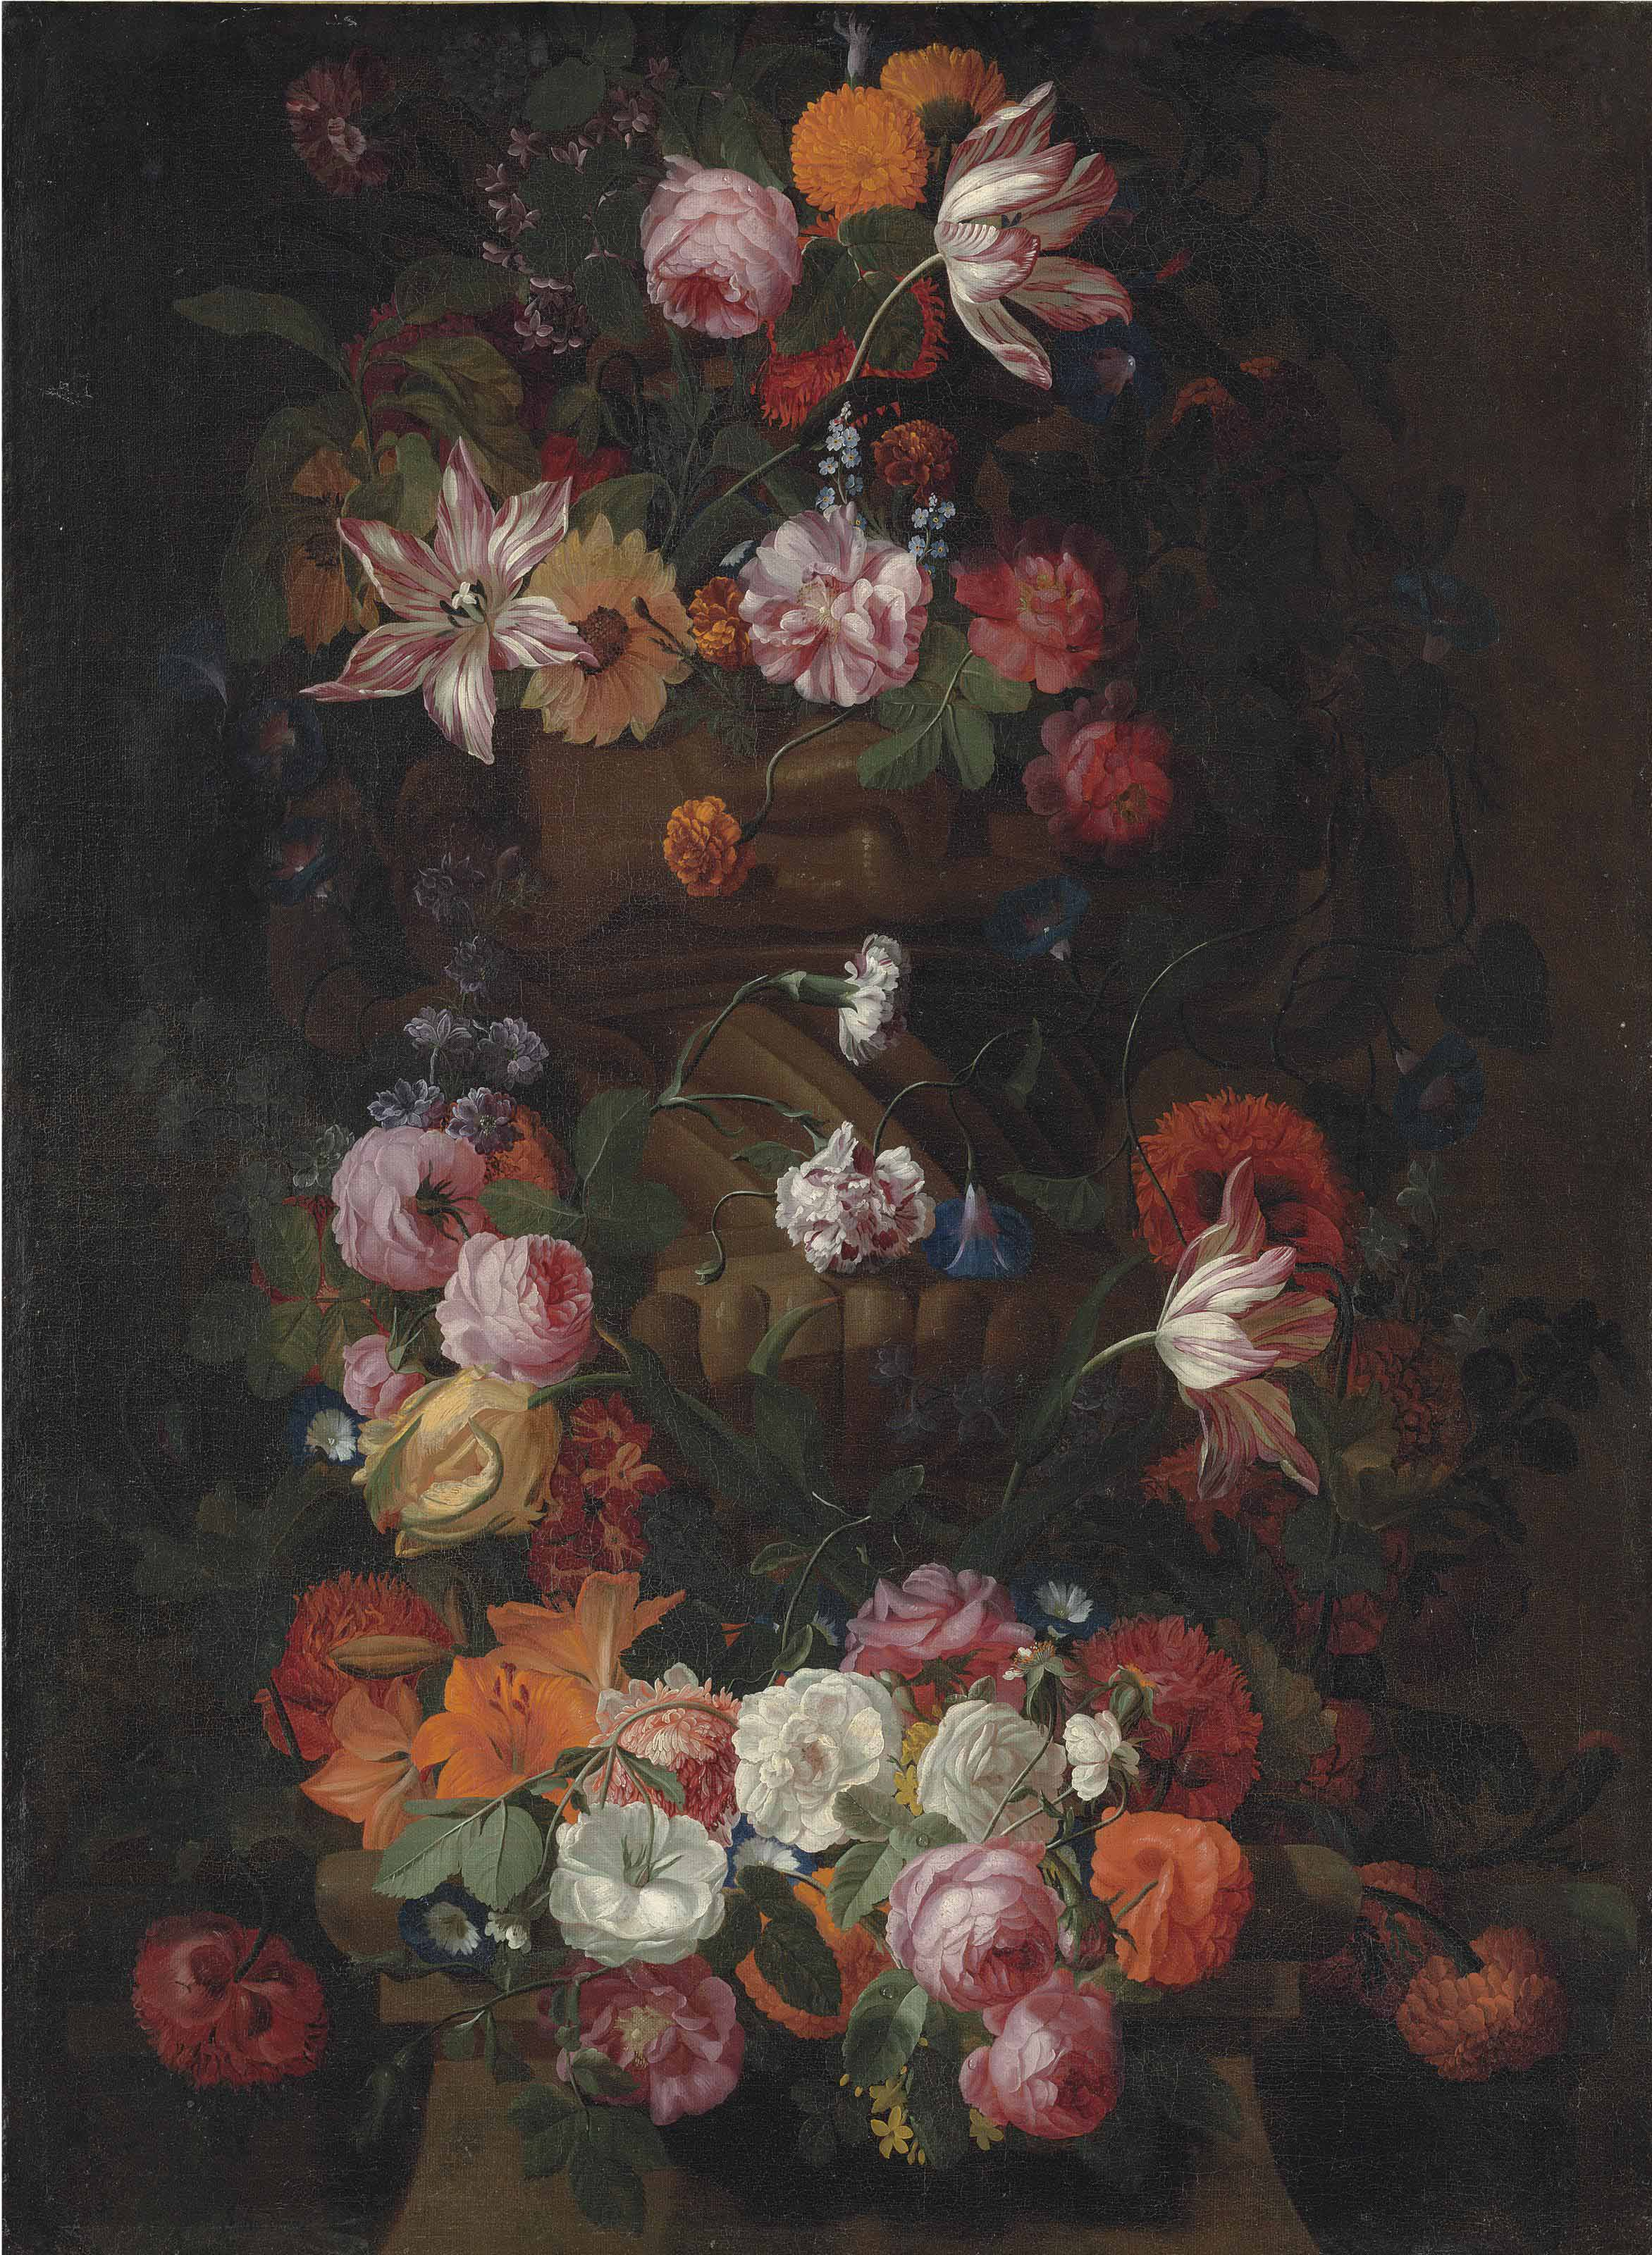 Parrot tulips, roses, a sunflower and other flowers in a sculpted urn, with a garland of roses, lilies, morning glory and other flowers around a column